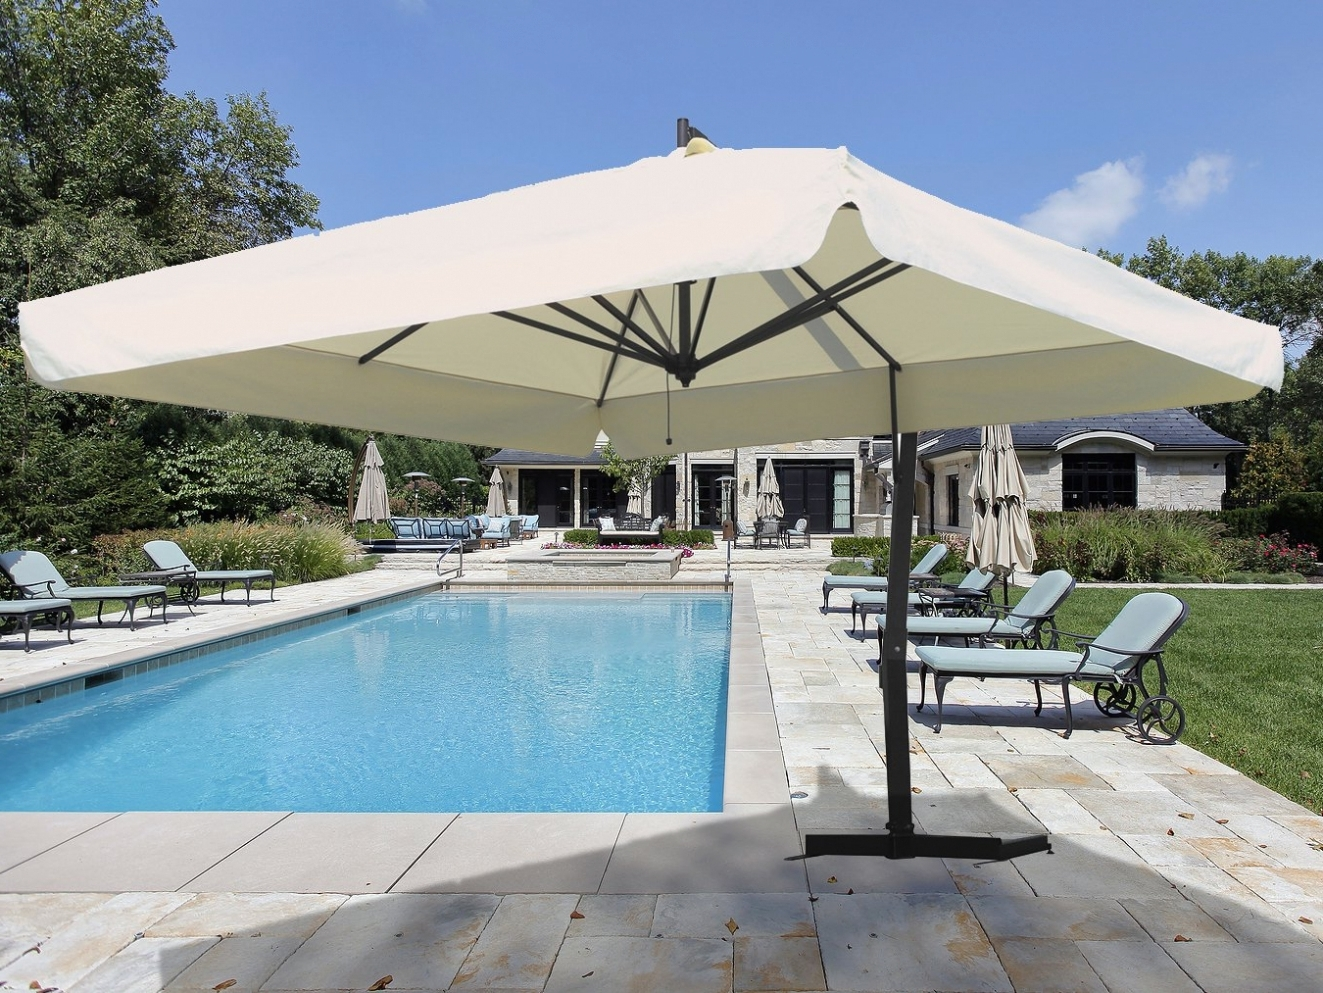 Recent Large Cantilever Patio Umbrellas – Theradmommy With Large Patio Umbrellas (View 14 of 20)